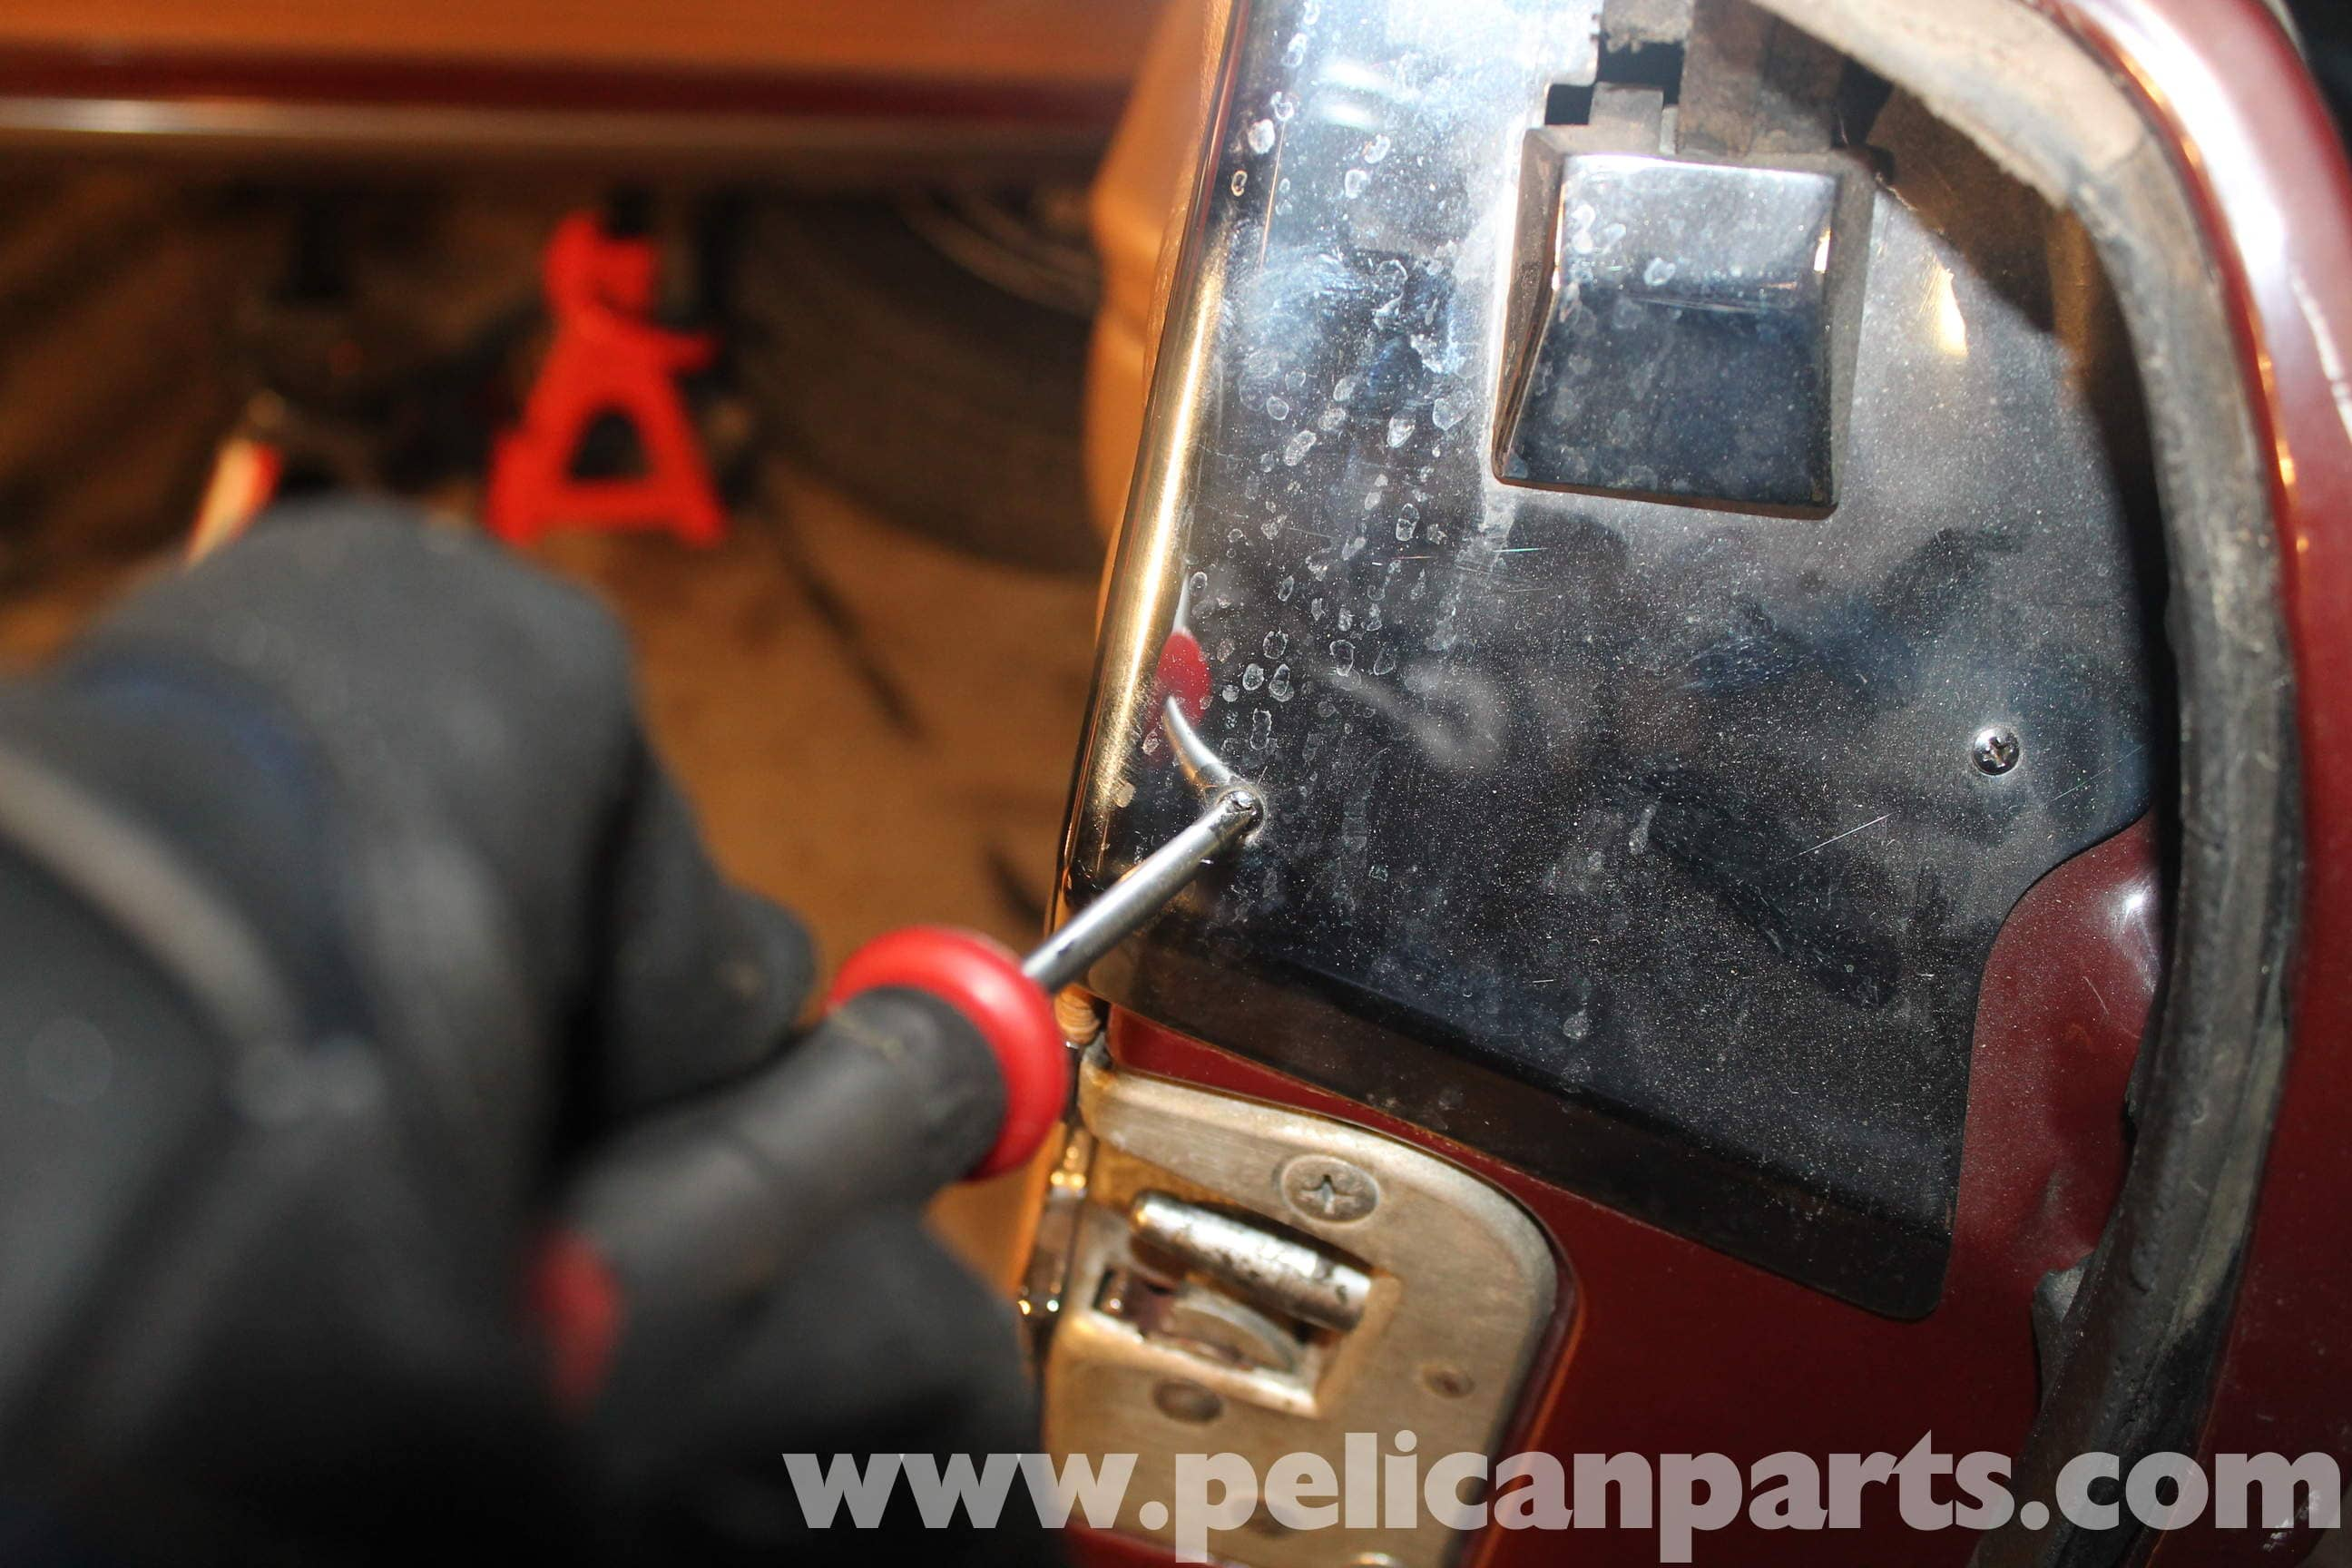 Mercedes Benz R107 Door Panel Removal And Replacement